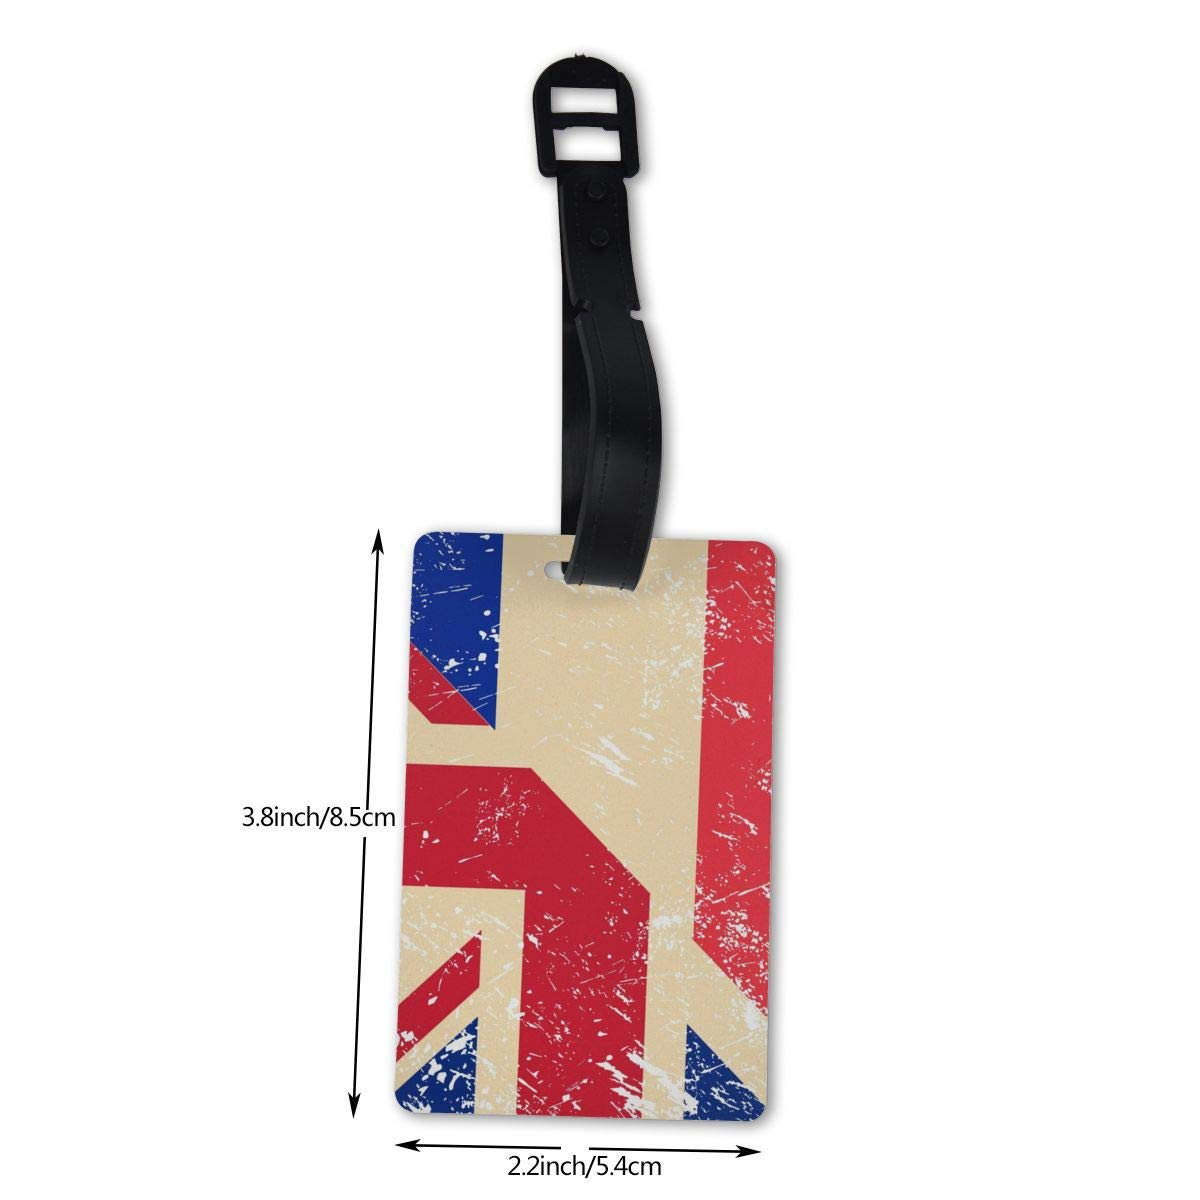 NB UUD Birtish and France Retro Flag Travel Luggage Tag Portable Employees Card Luggage Tag Holders Travel ID Identification Labels for Baggage Suitcases Bags